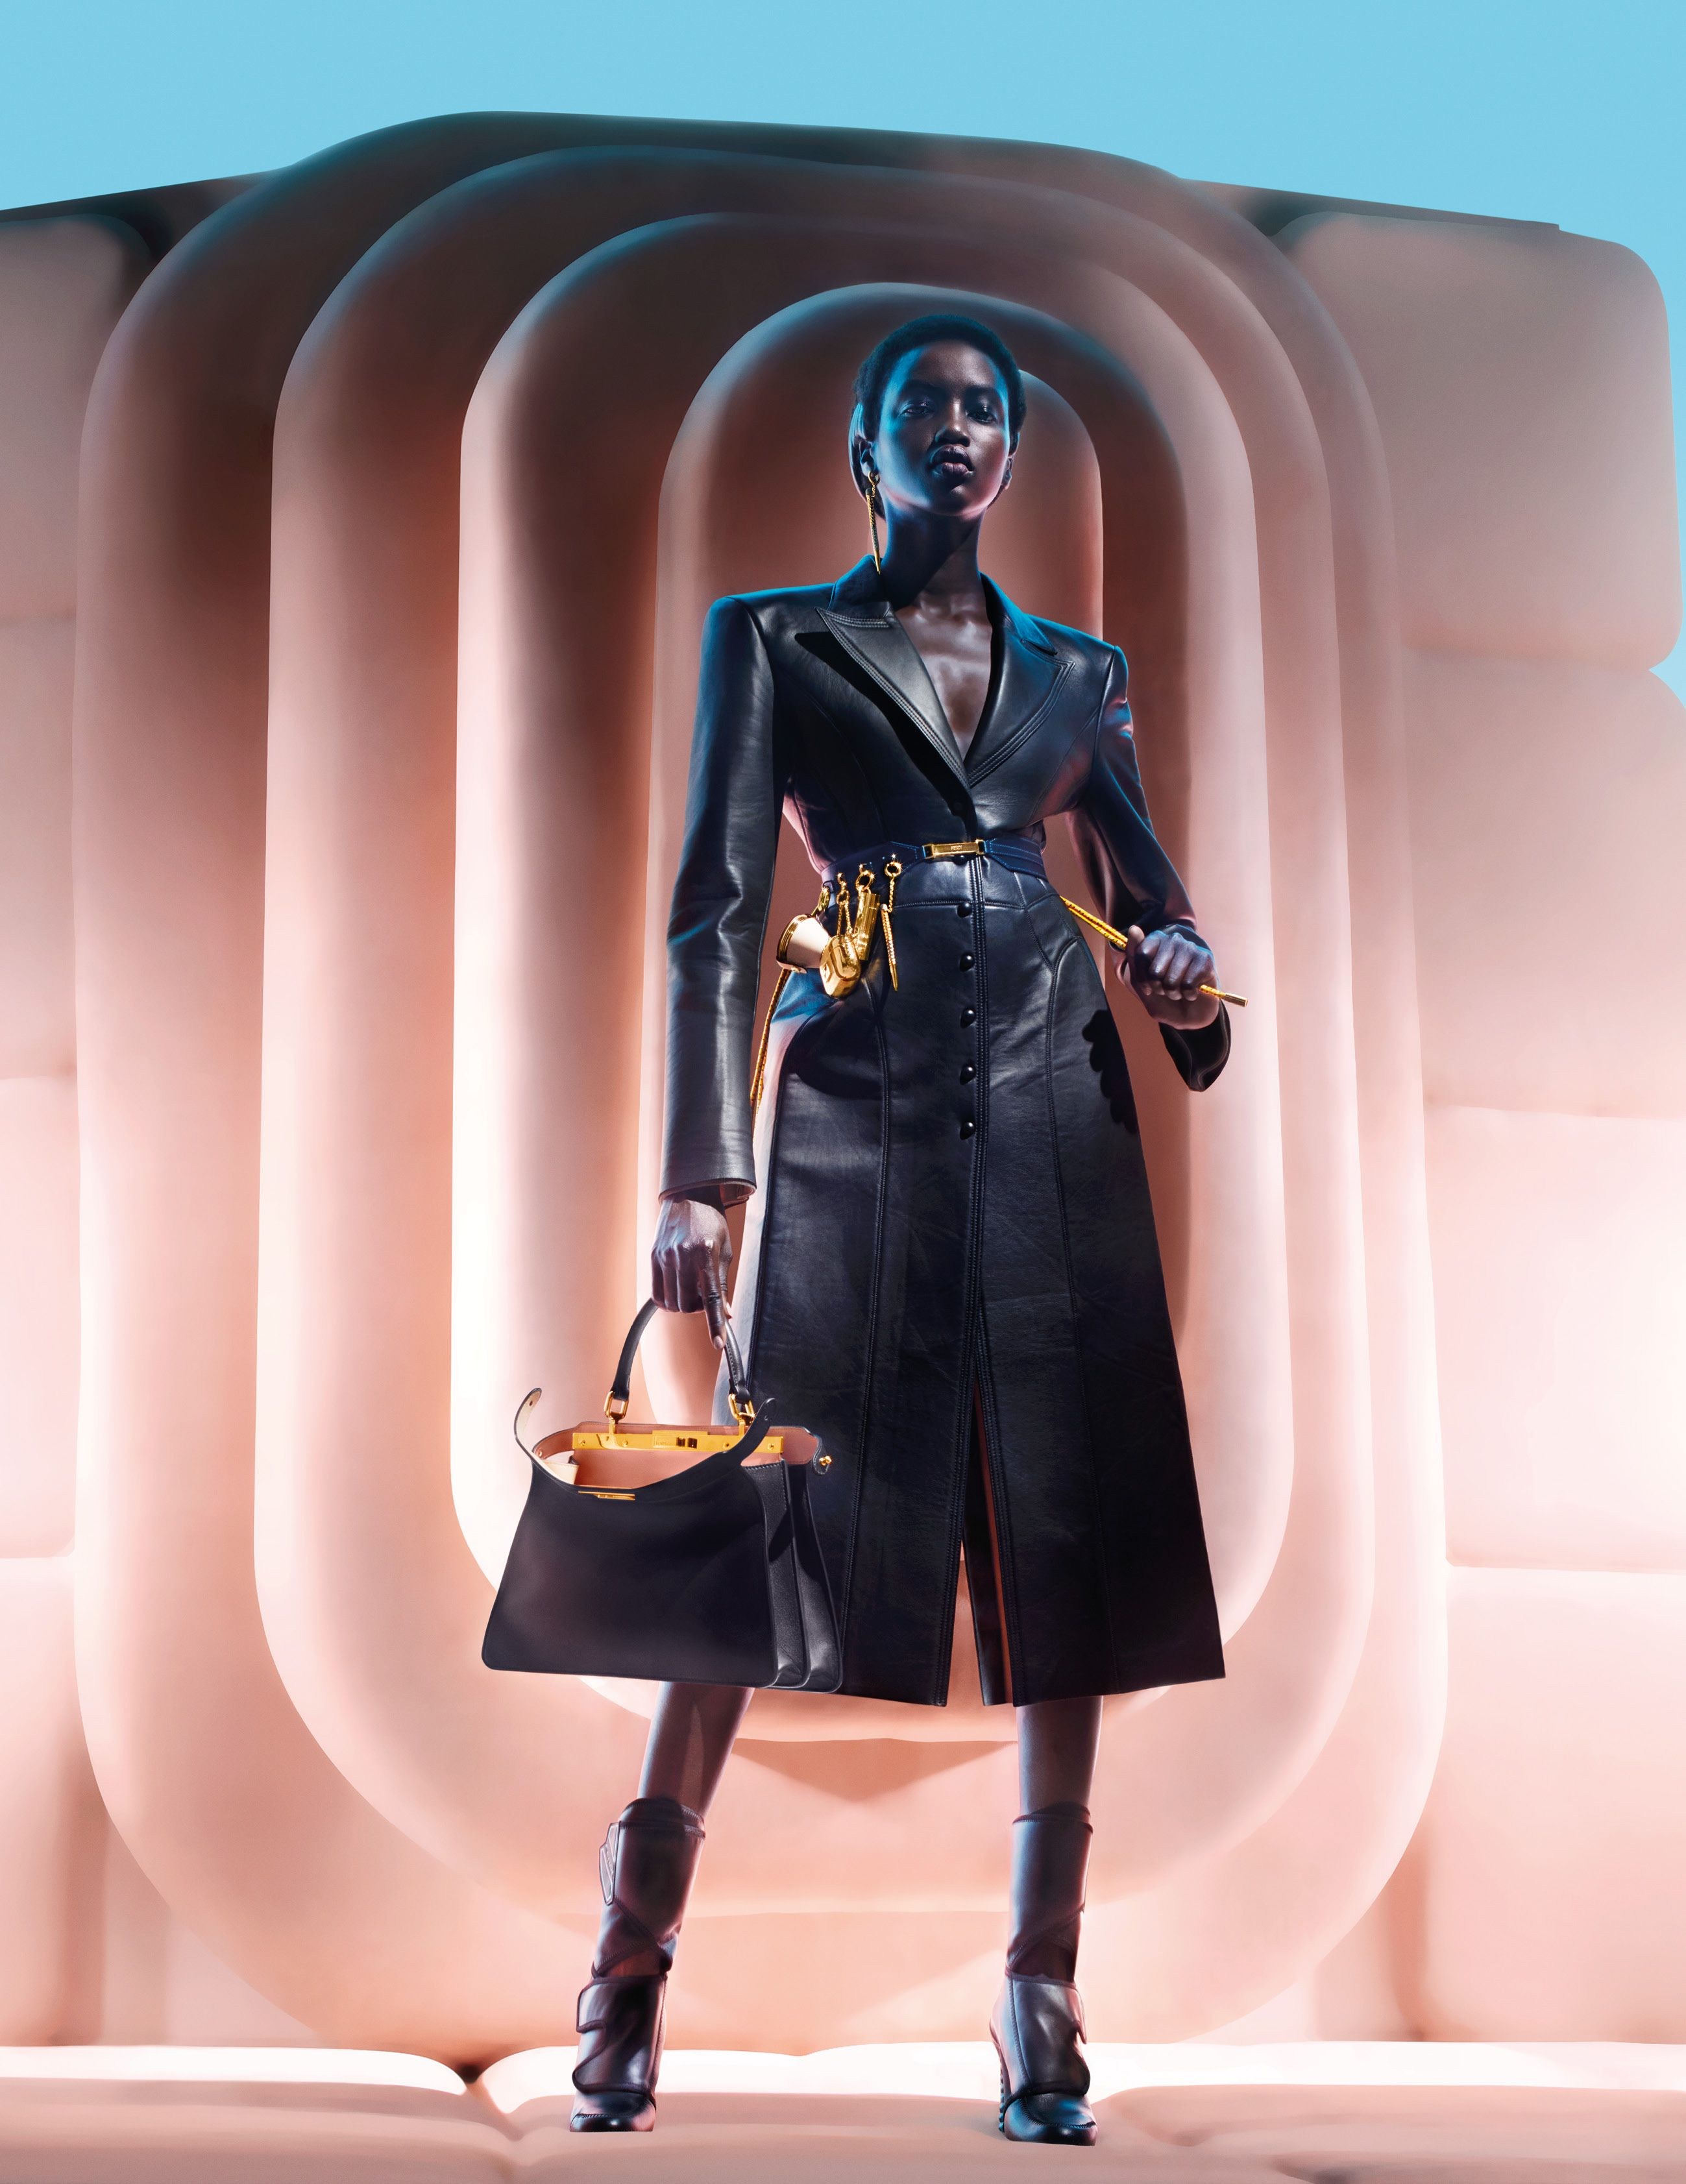 Fall Winter 2020 Fashion Campaigns All The Best Fall Winter 2020 Fashion Advertisements